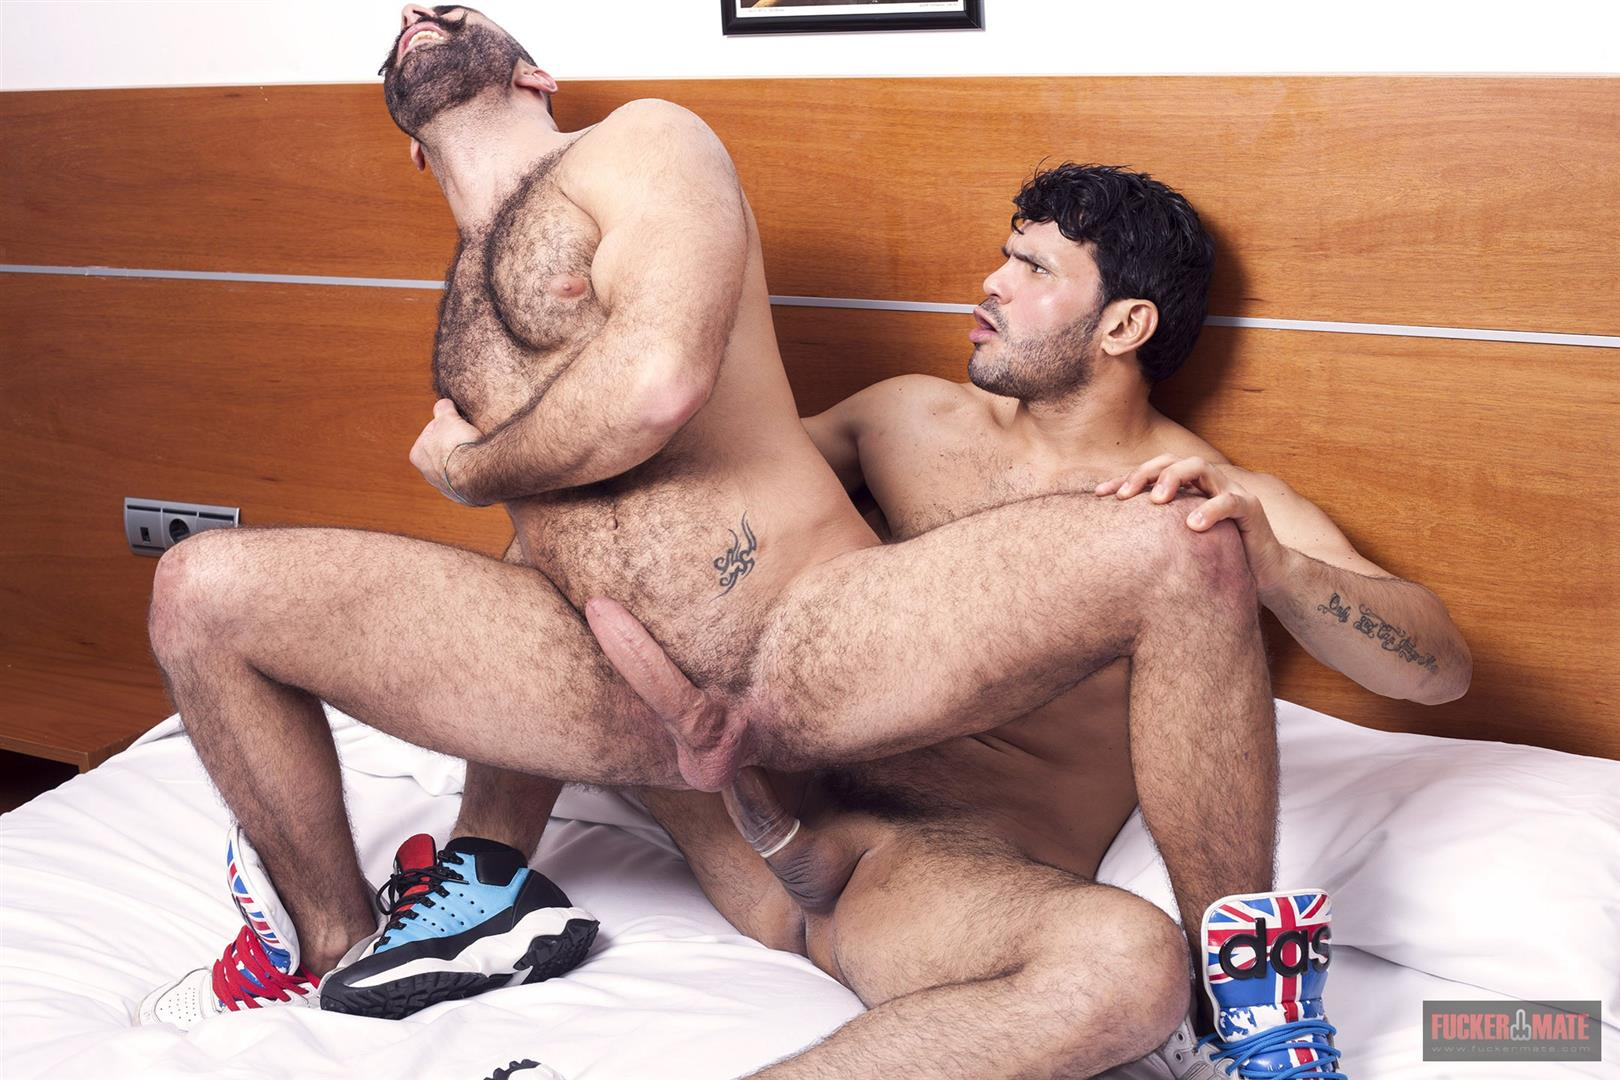 Fuckermate Jean Frank and Paco Hairy Muscle Hunks With Big Uncut Cocks Fucking Amateur Gay Porn 14 Hairy Muscle Italian Hunks With Big Uncut Cocks Fucking Rough